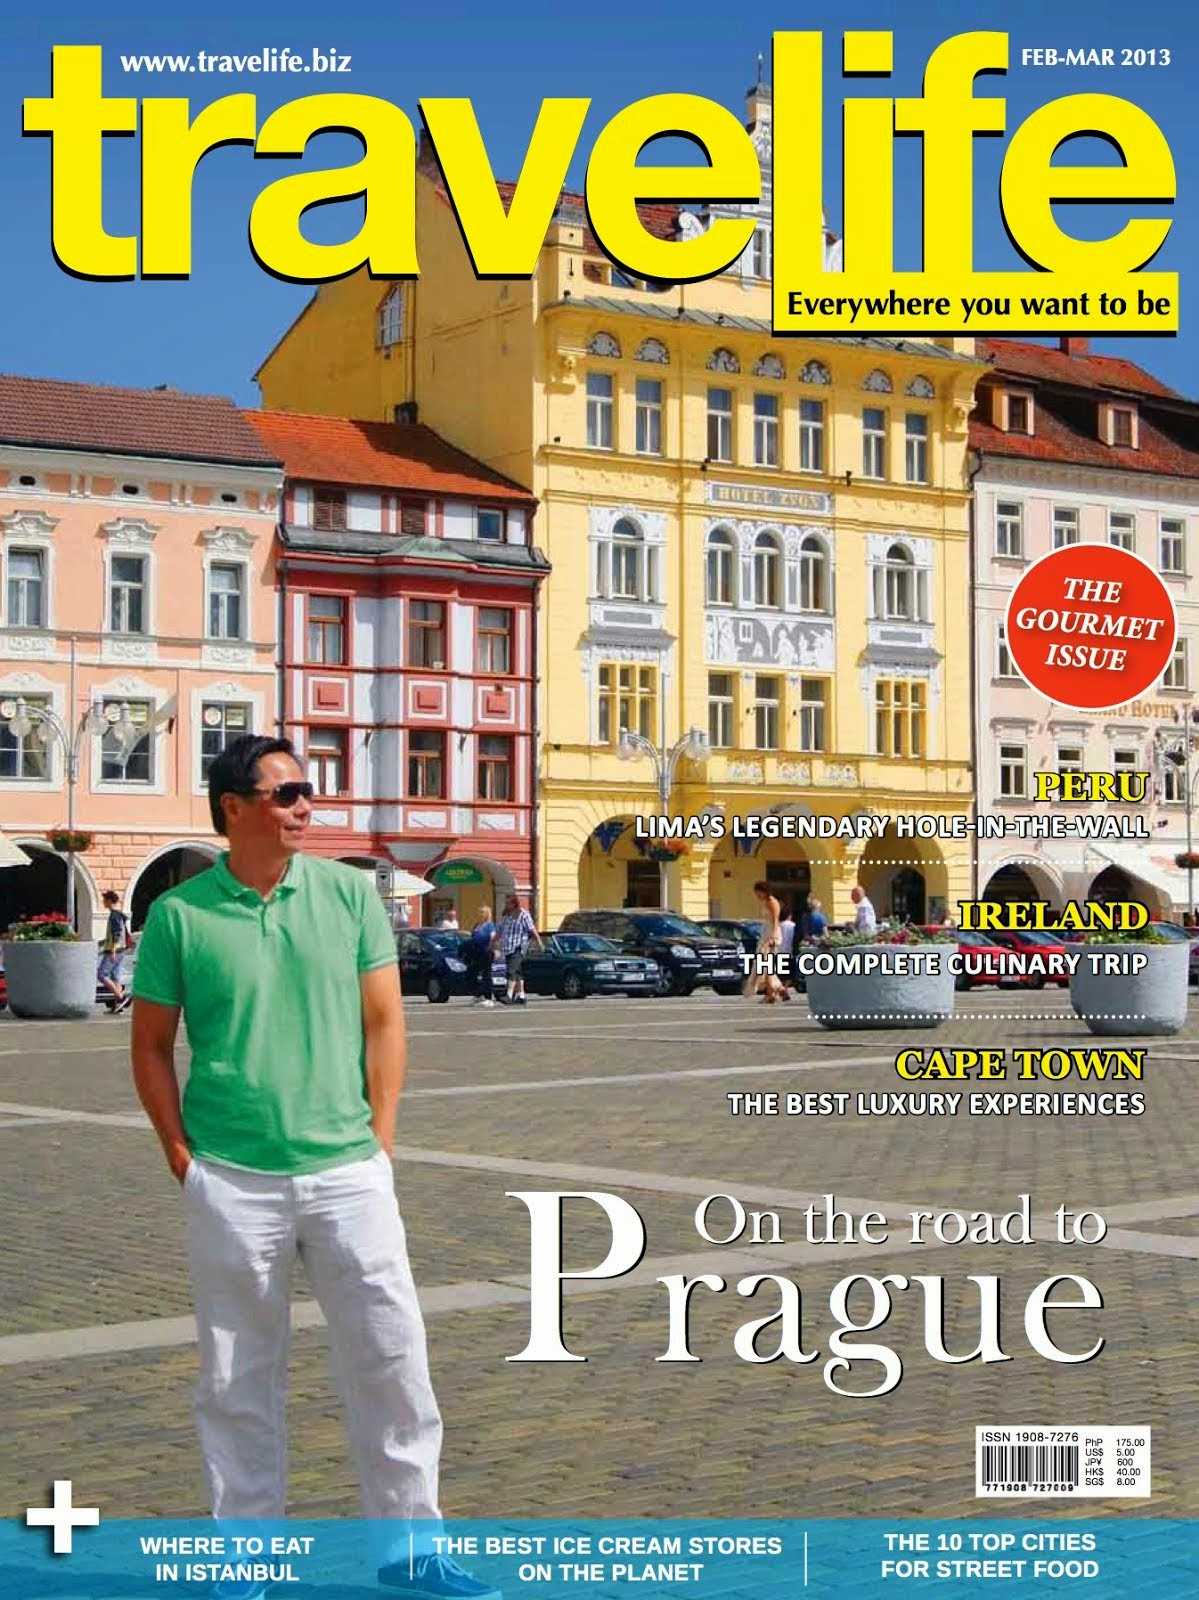 THE FASCINATING CZECH REPUBLIC